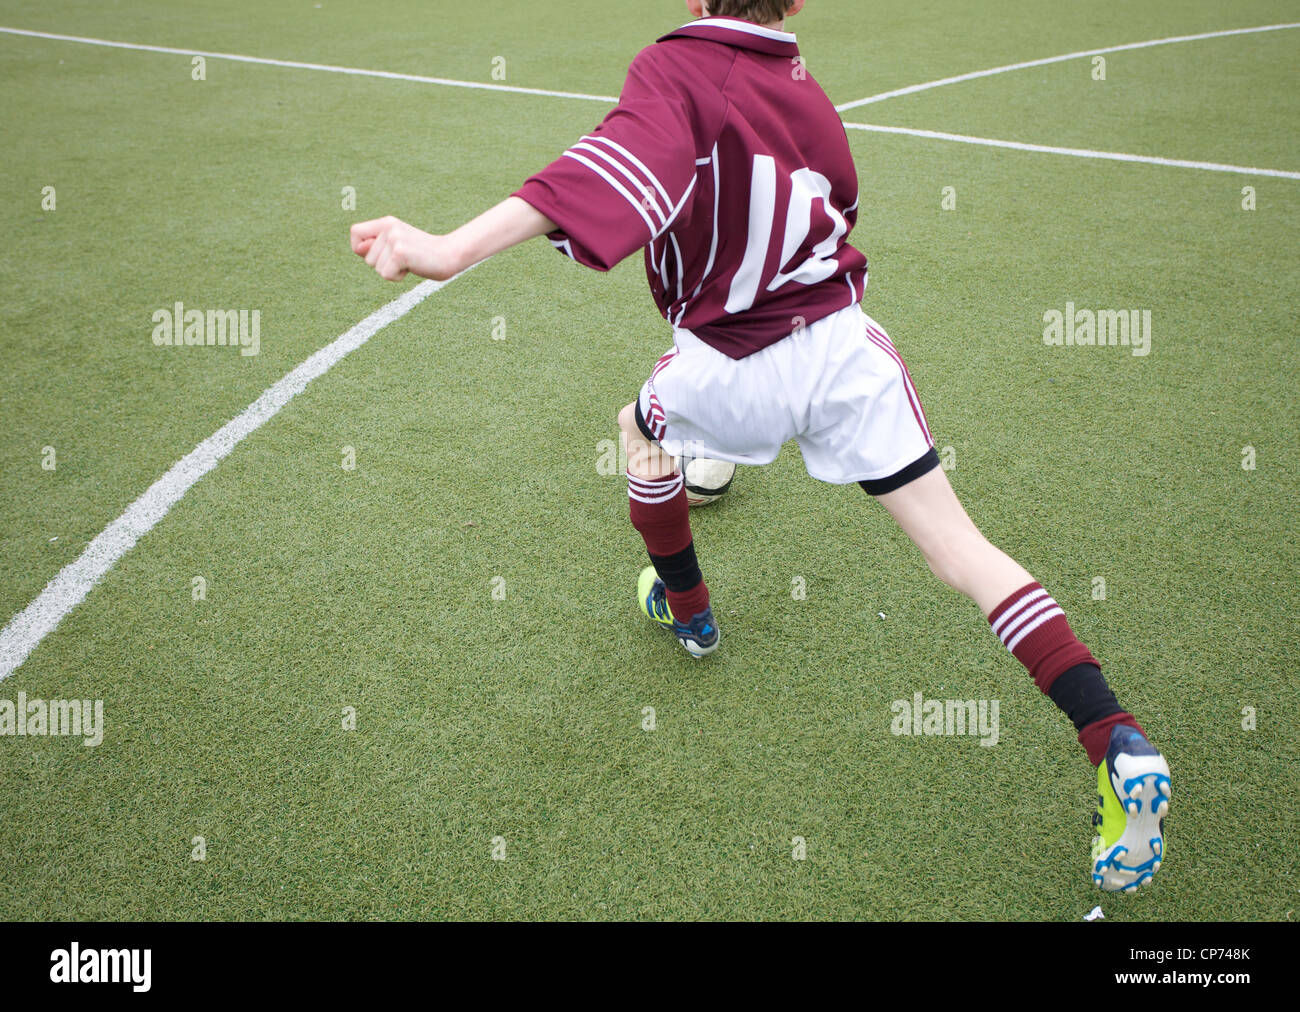 A young footballer about to kick a football. - Stock Image